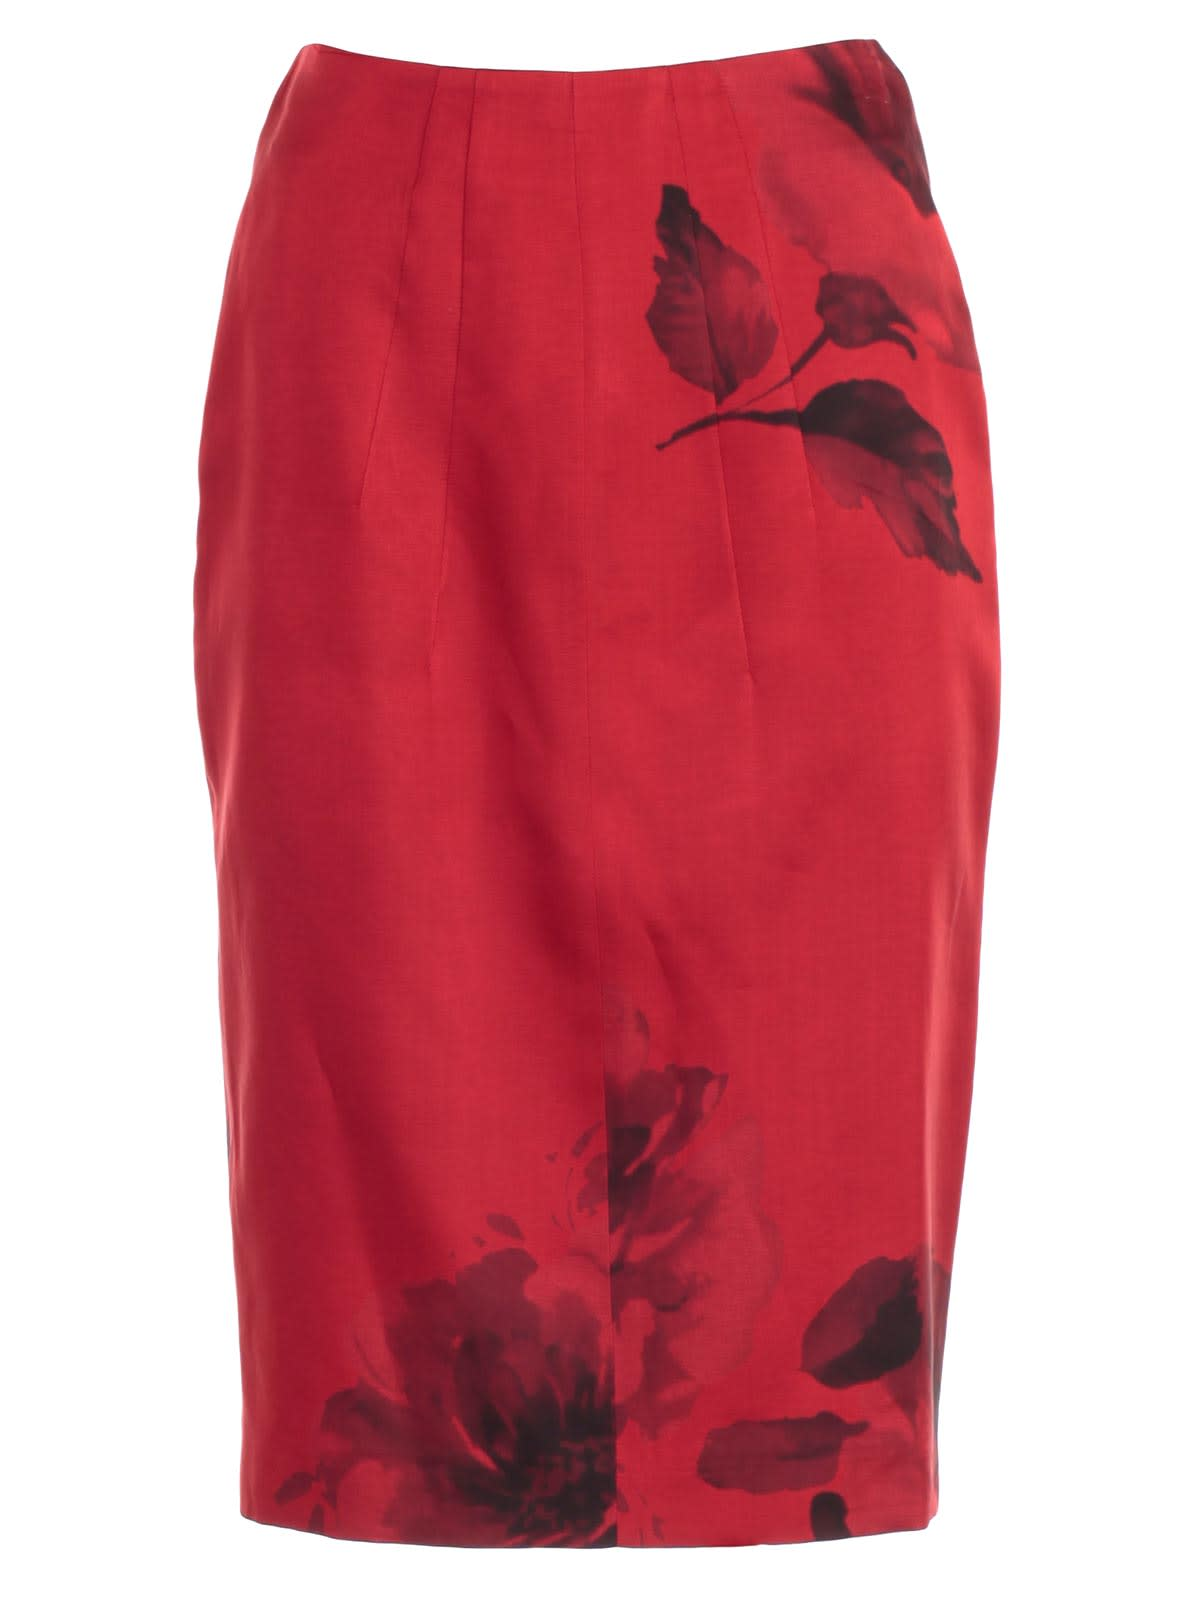 N.21 Skirt Pencil Roses Printing from N.21Composition: 100% Viscose